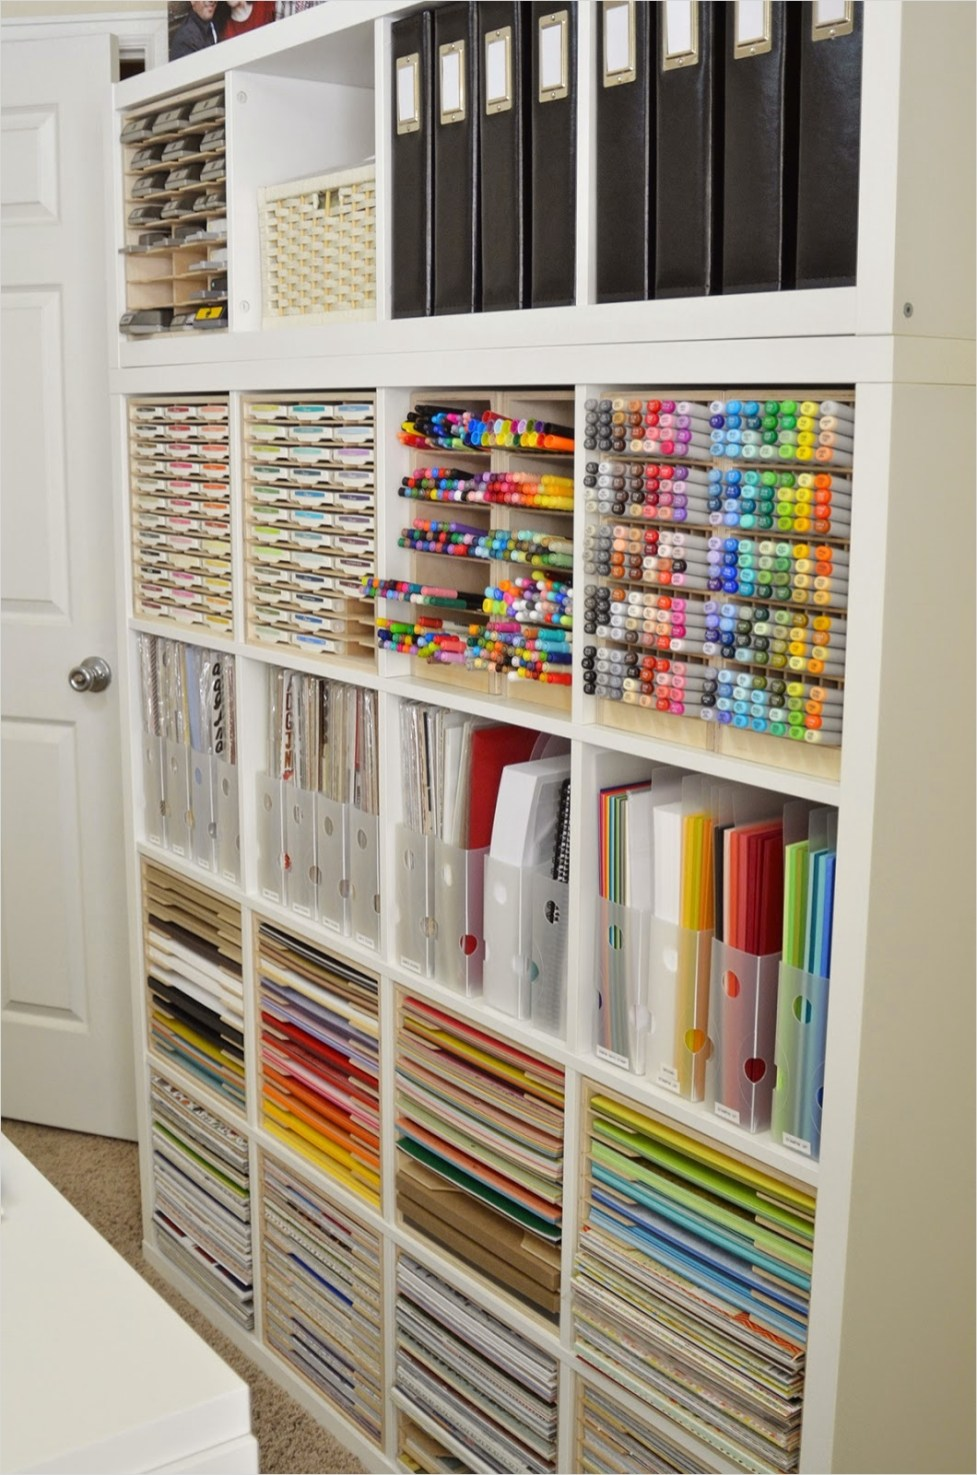 Craft Room Wall Shelving 29 Jeanne S Paper Crafts An Update and A Little Re organization Of My Craft Studio 3